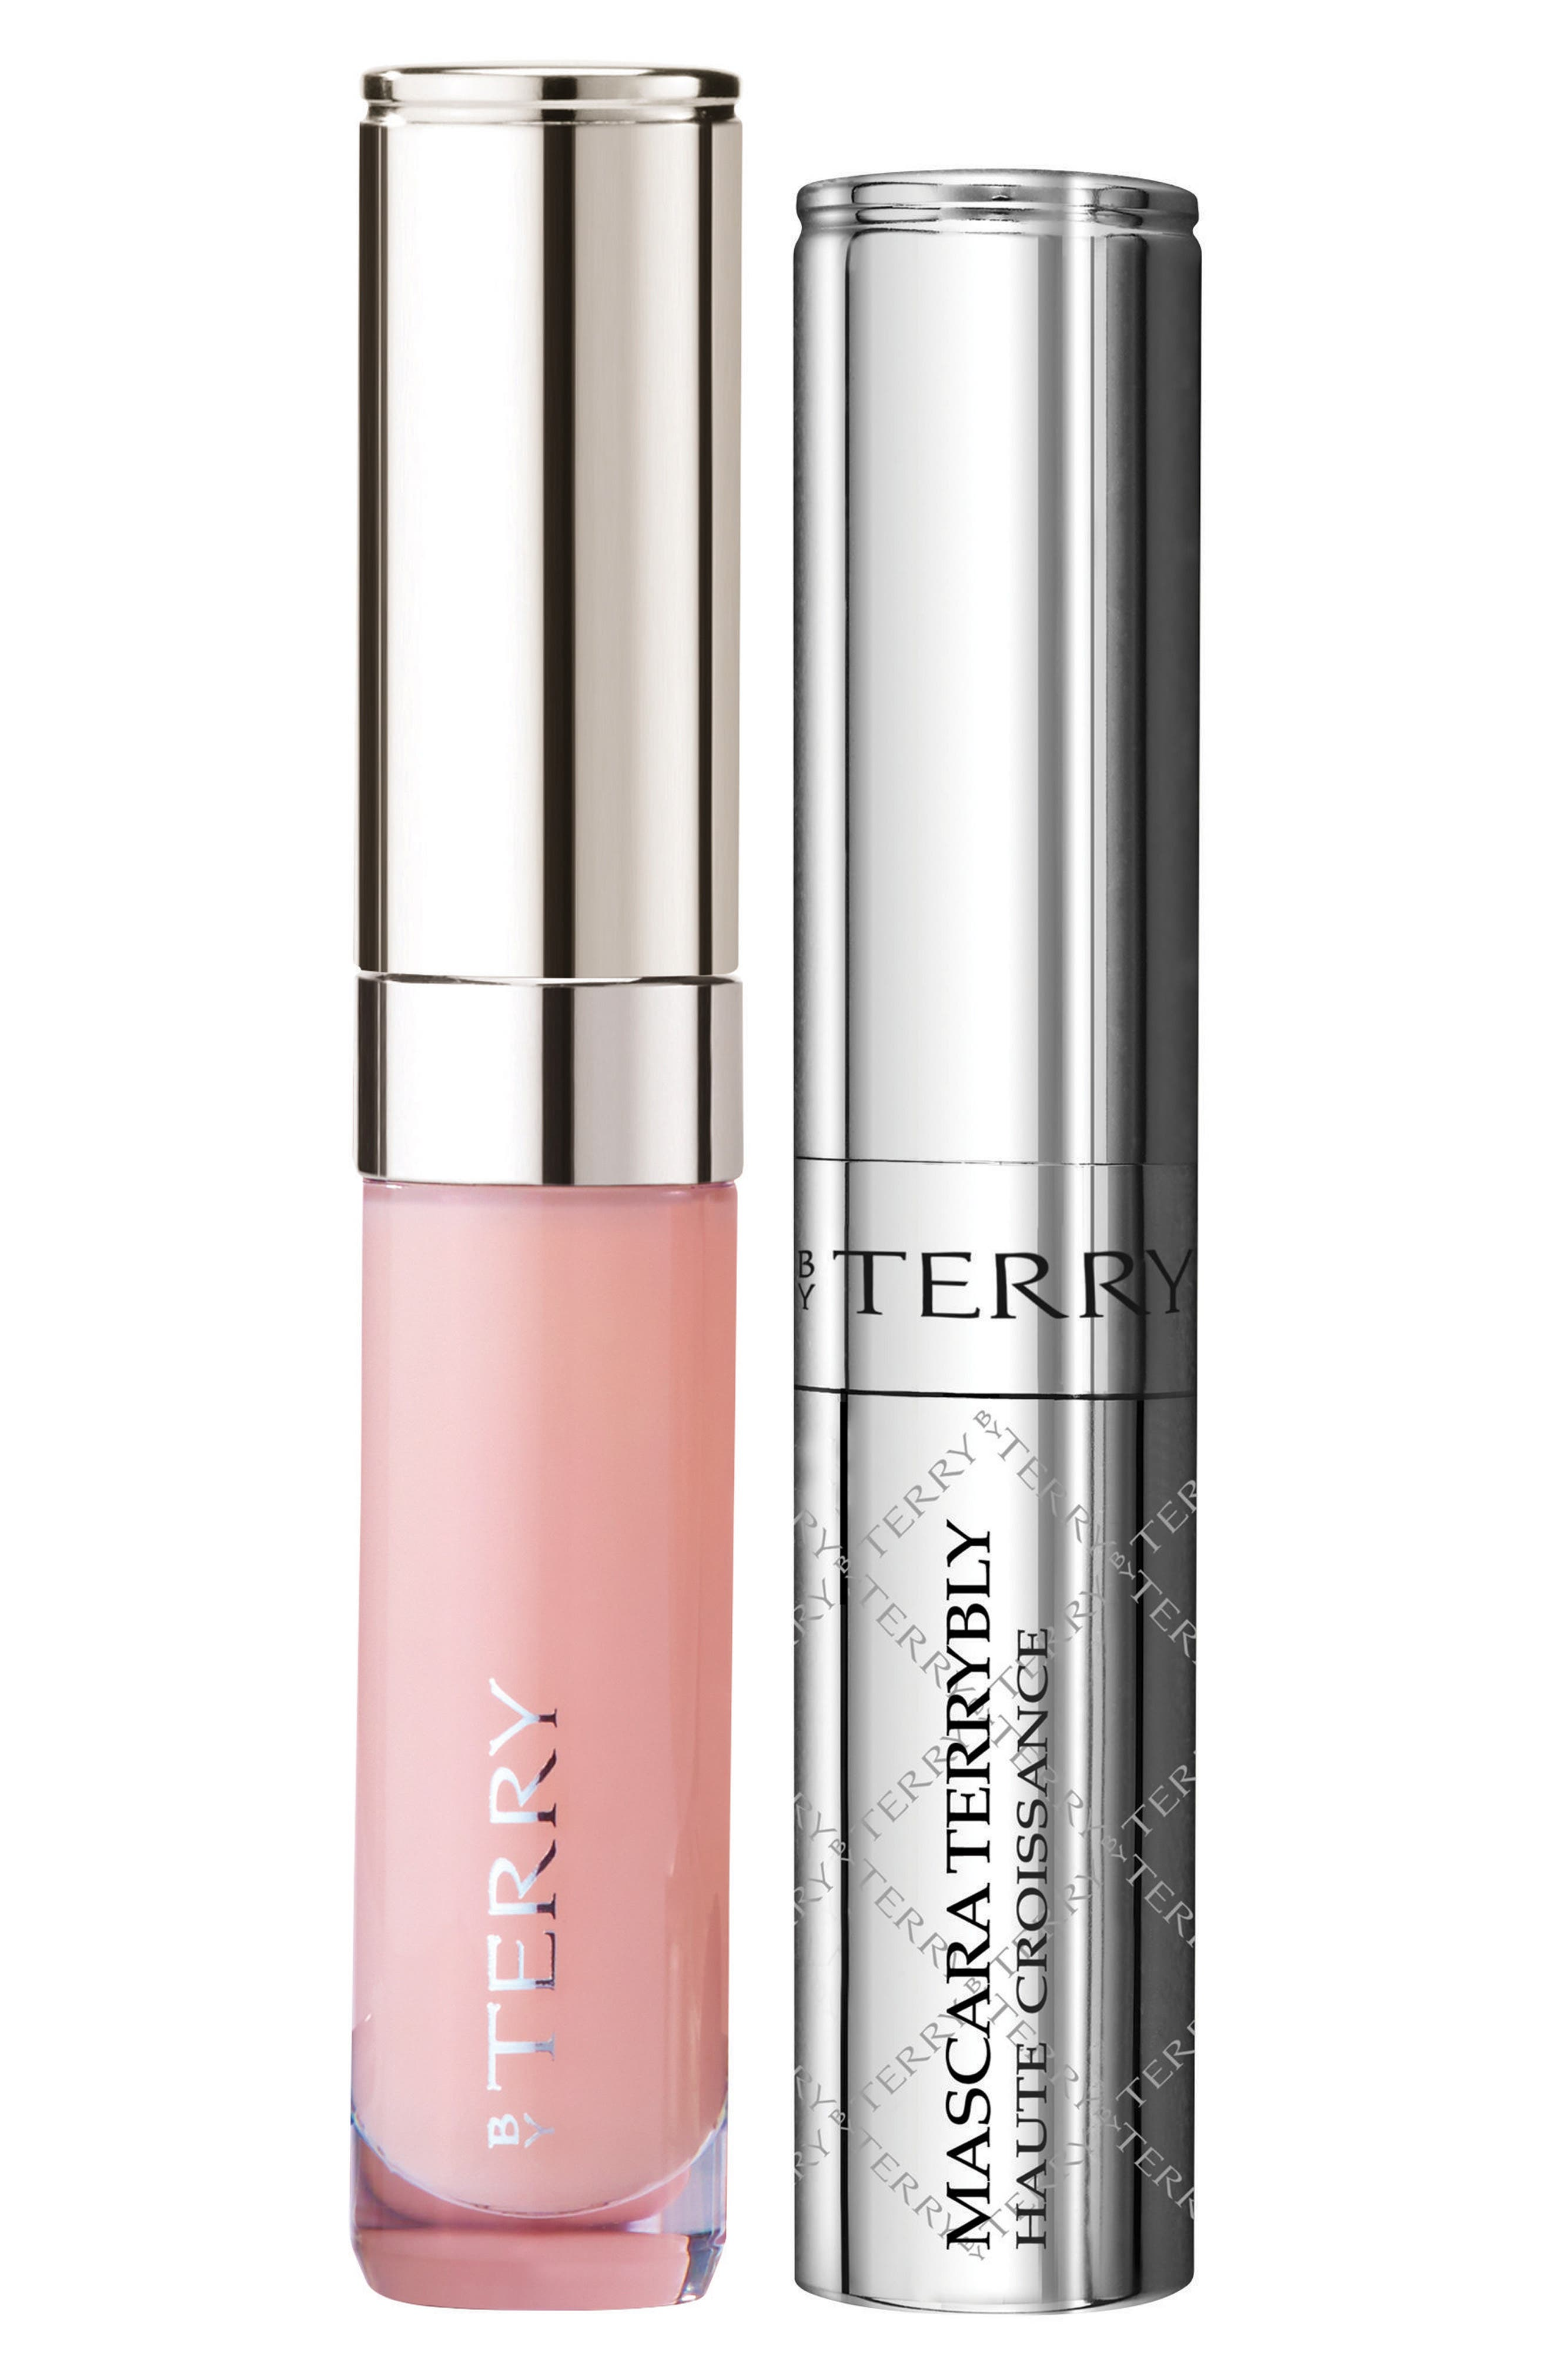 SPACE.NK.apothecary By Terry Lip & Lash Duo ($44 Value)